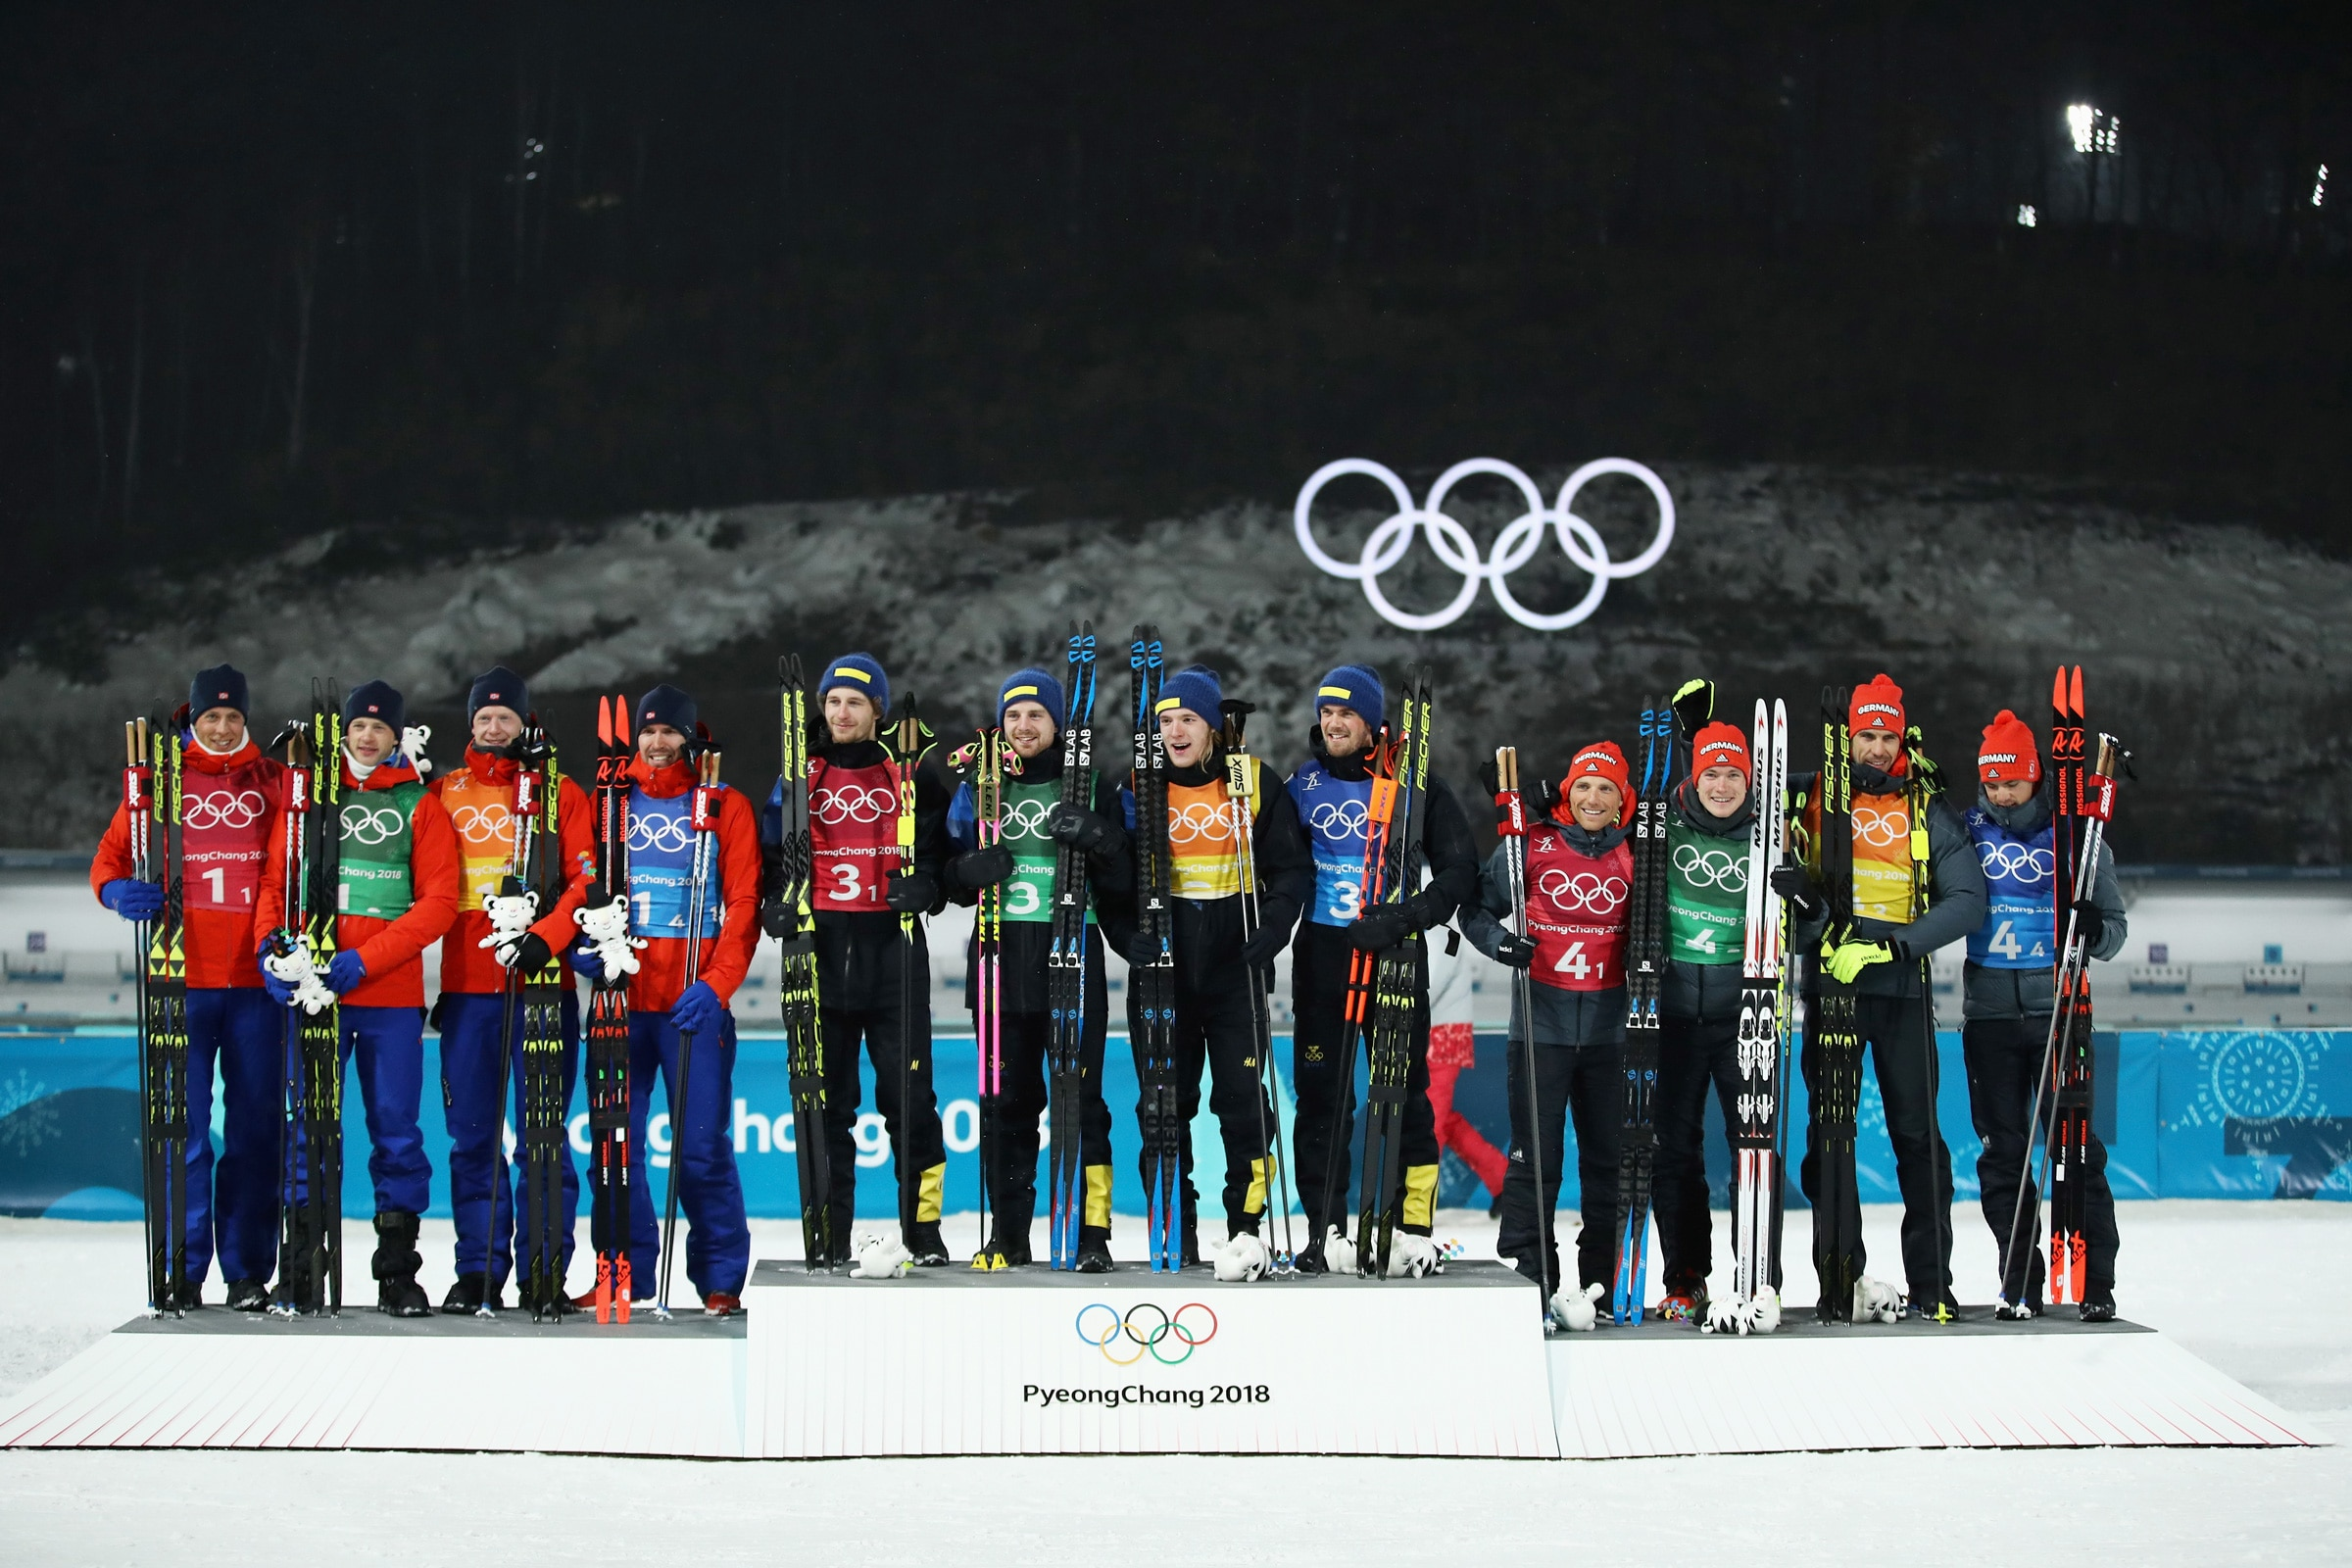 Biathlon - Men's 4x7.5km Relay